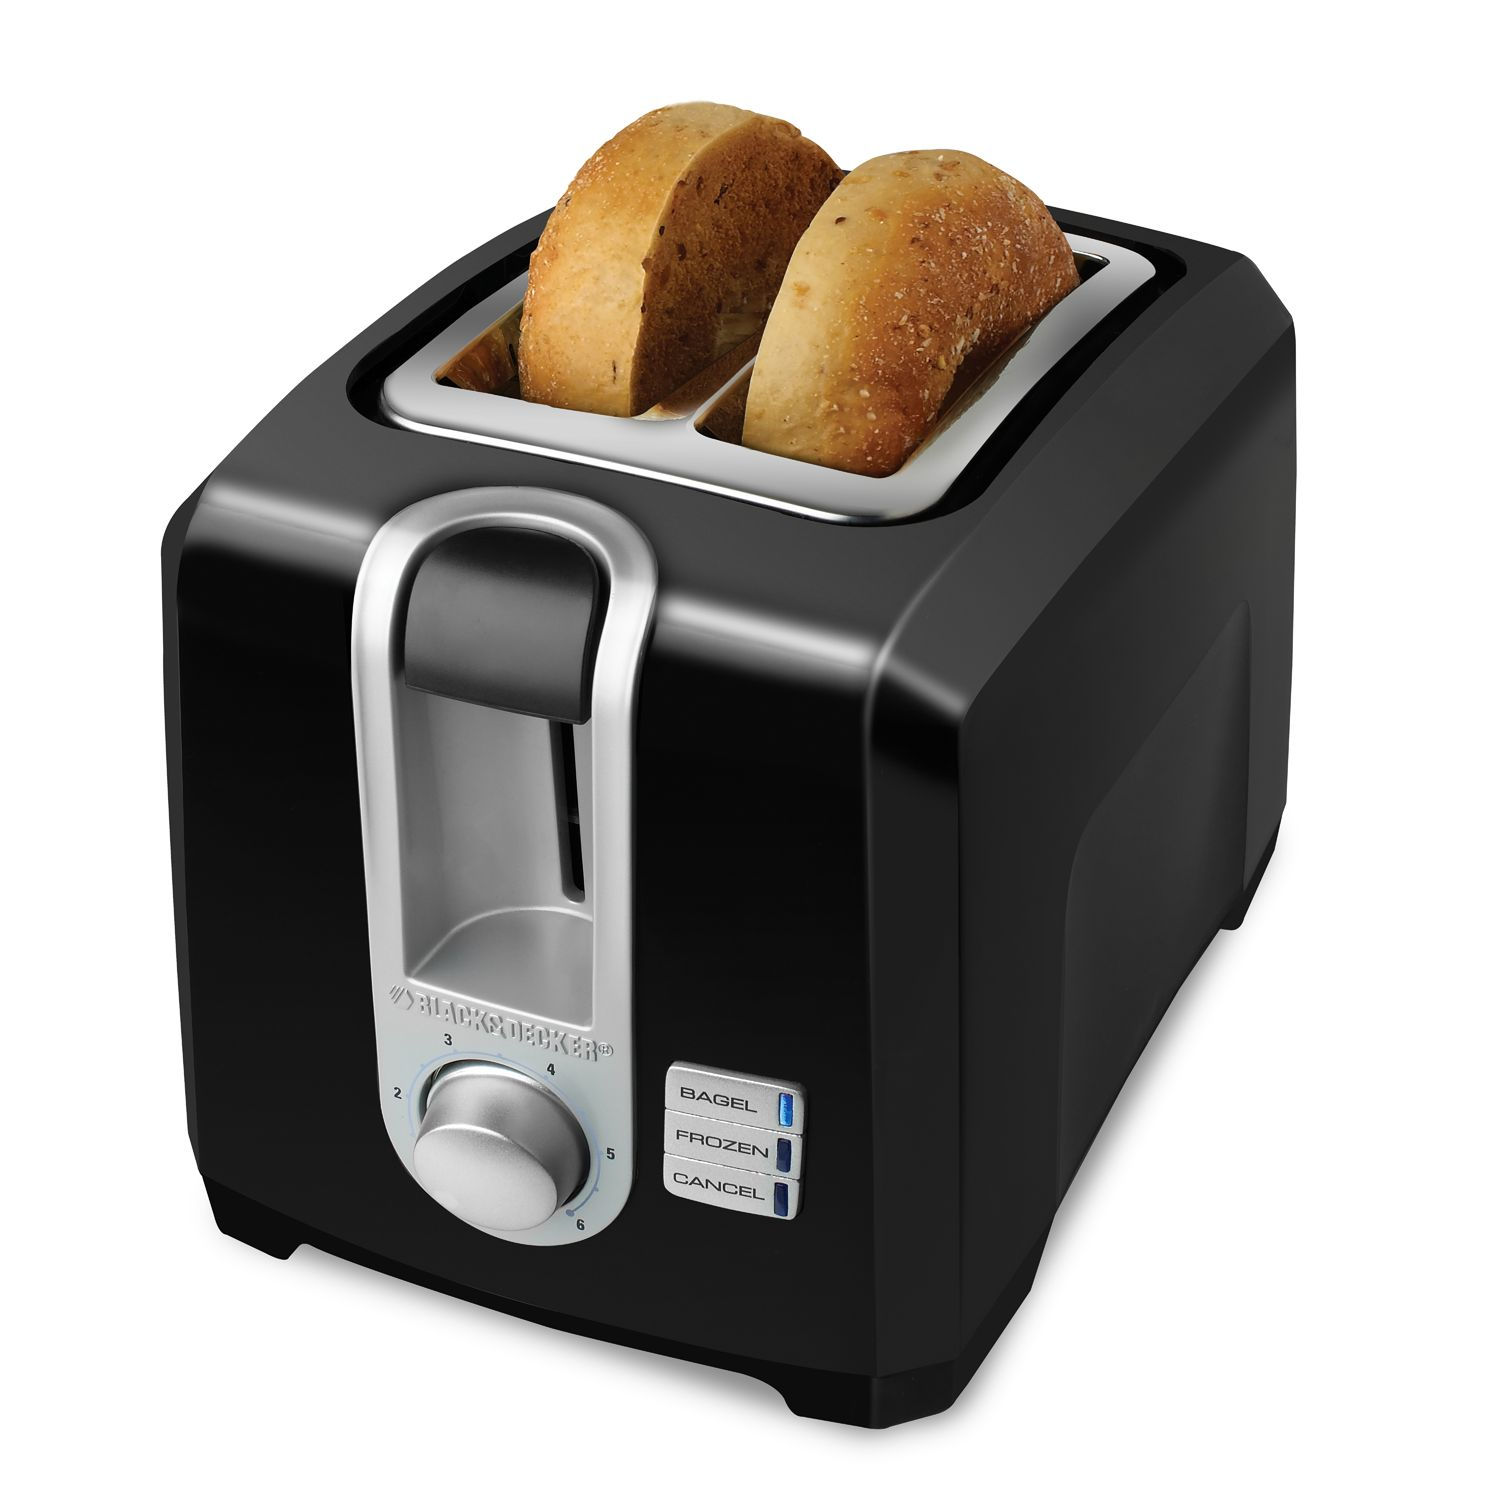 \u0026 Decker 2-Slice Toaster